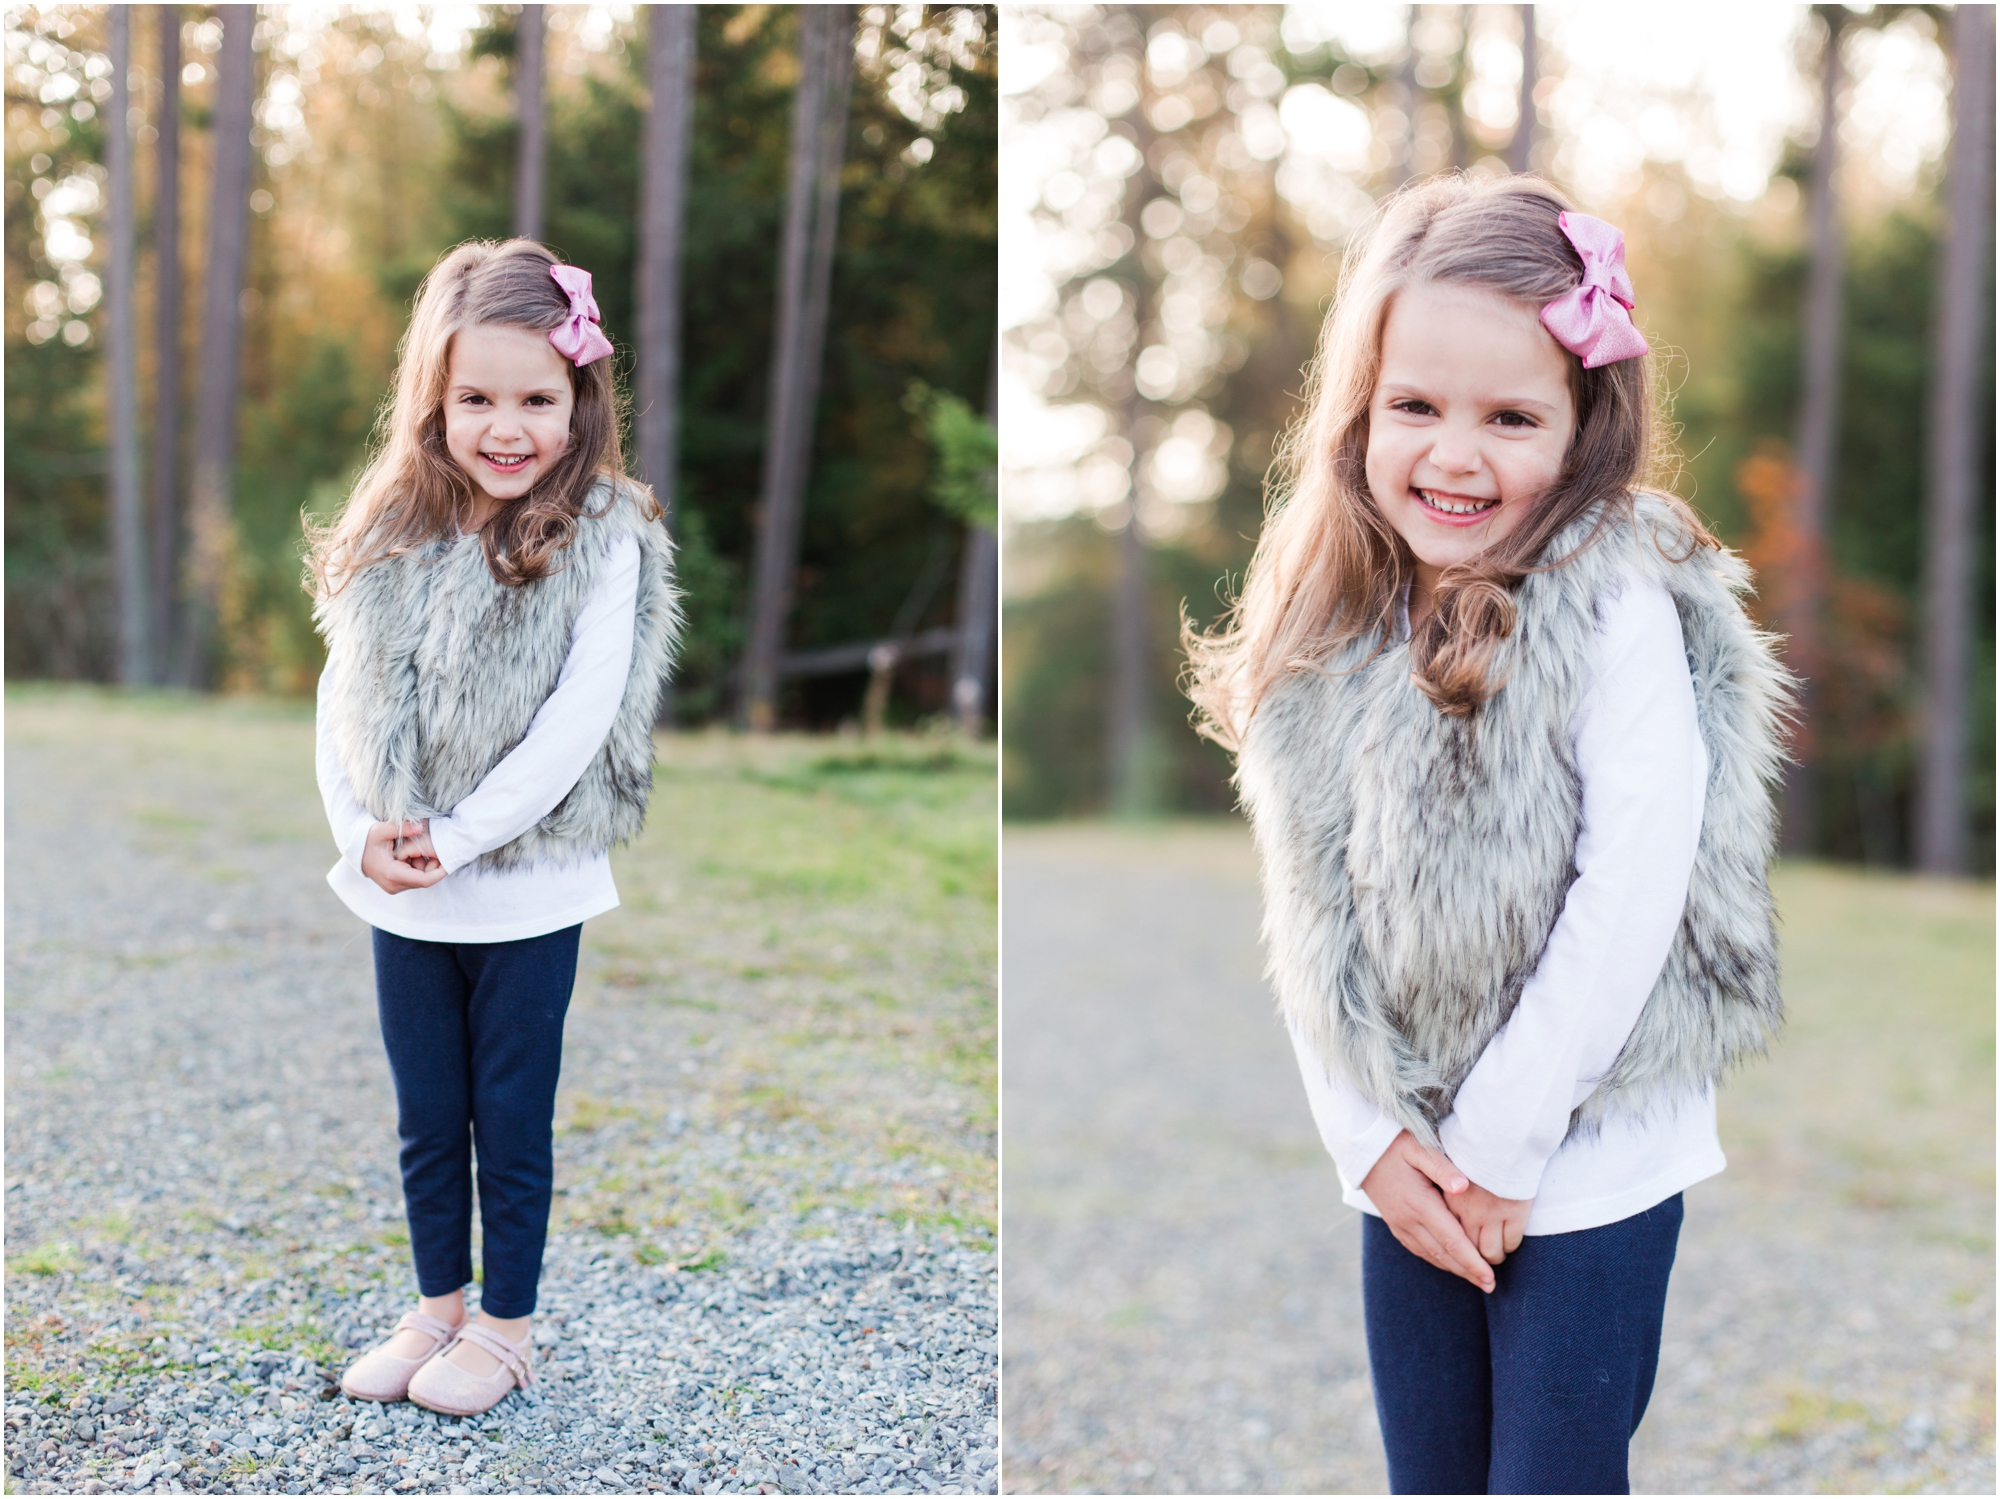 Fall family pictures by Briana Calderon Photography based in the Greater Seattle & Tacoma, WA_0920.jpg